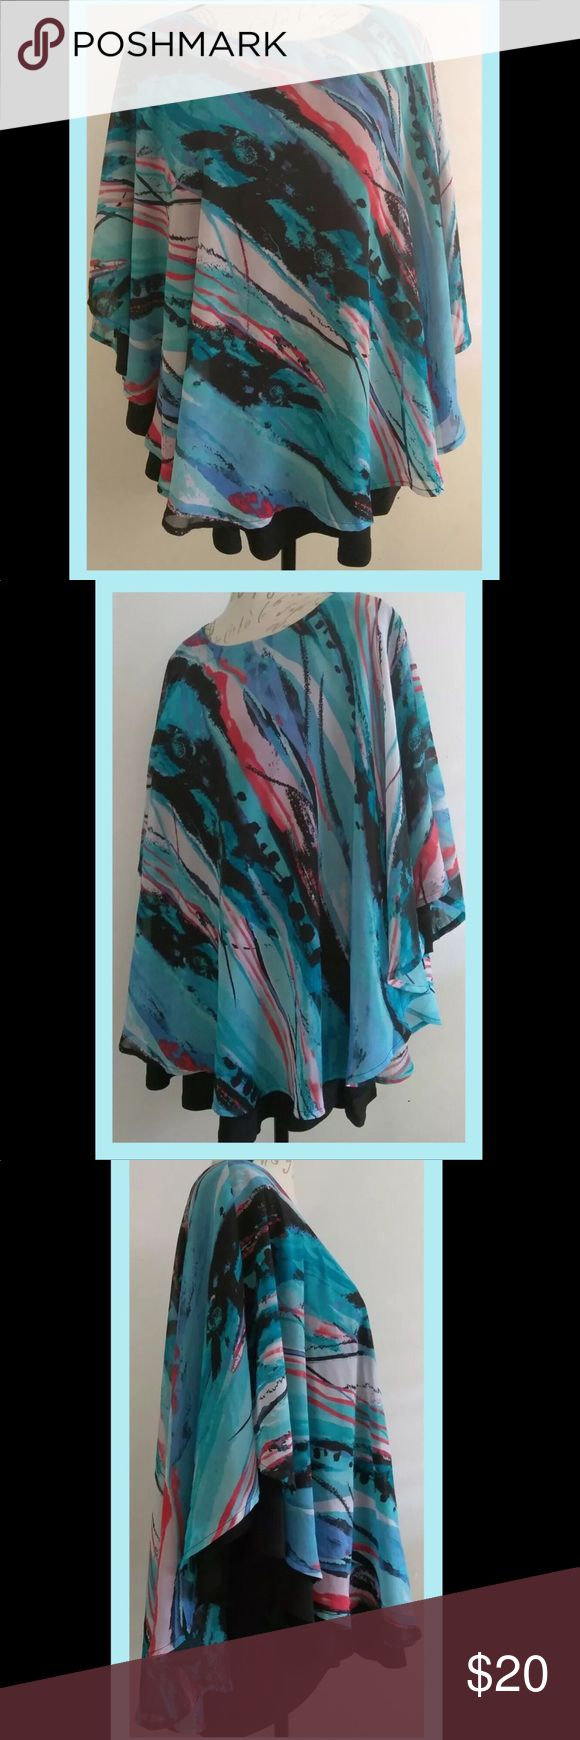 18/20 EUC Avenue Women's Batwing Top 18/20 Avenue Women's Blouse (Batwing Style). Beautiful shades of Blue, Turquoise, Coral, Black and White (sheer) lined in Black Batwing Style underlay (polyester). Dress it up or down with jewelry, jeans or trousers. Flattering and forgiving- can't go wrong! Bundle and save! PRICE REDUCED- FIRM ON SINGLE!! Avenue Tops